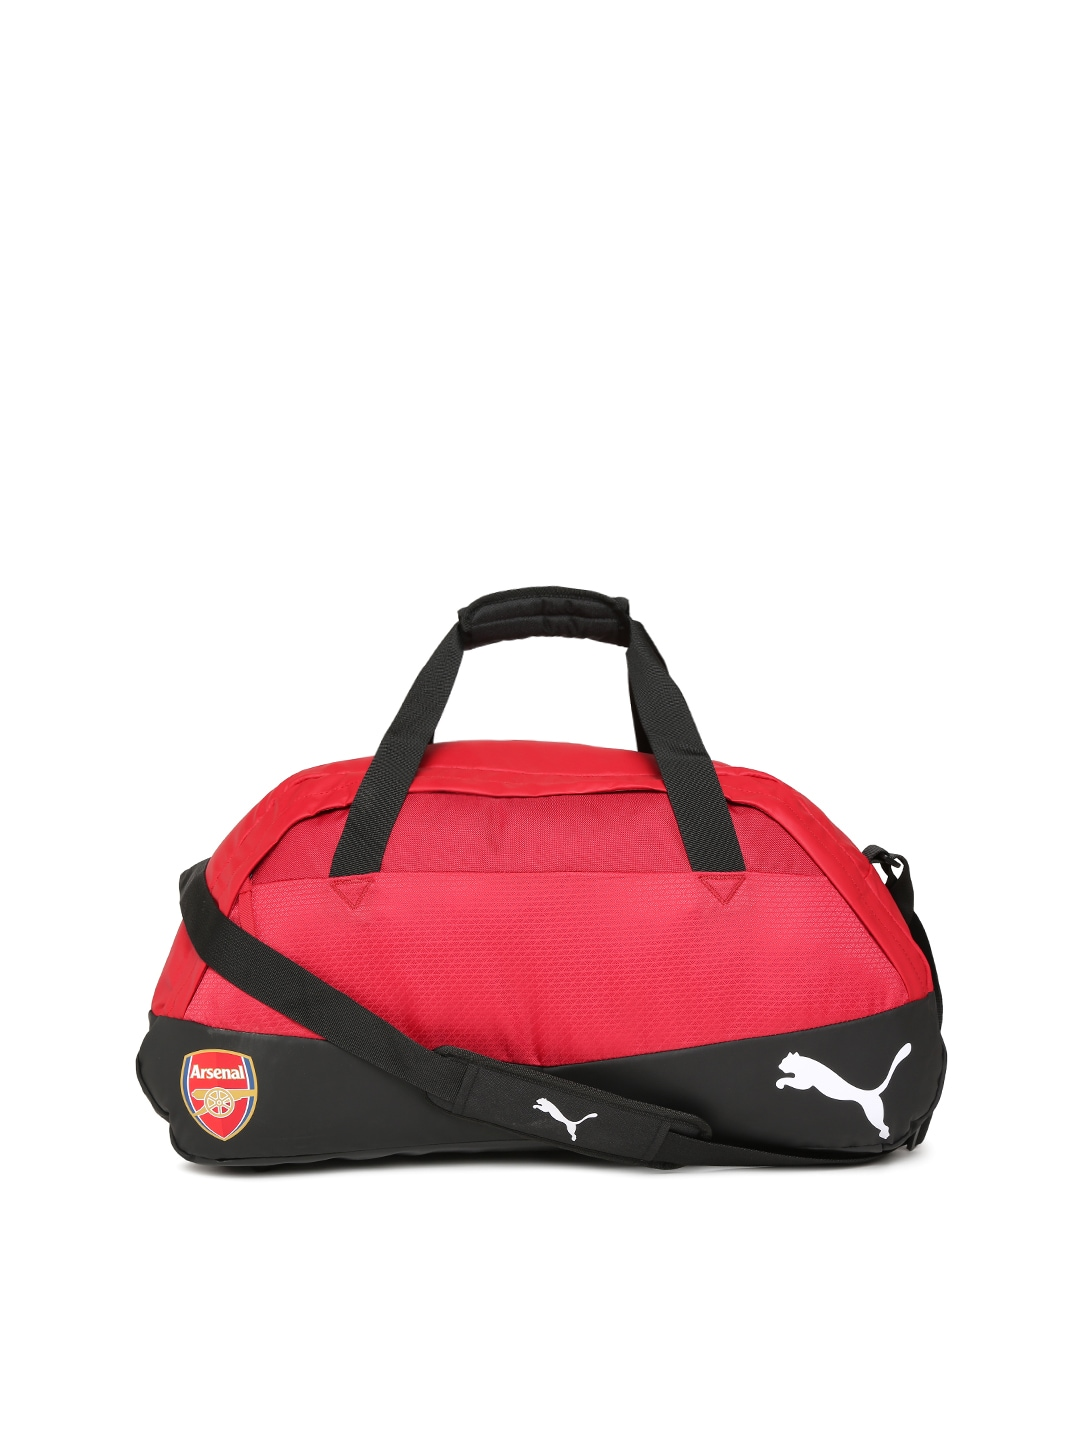 Arsenal Accessories - Buy Arsenal Accessories Online in India 15c2d506177d1